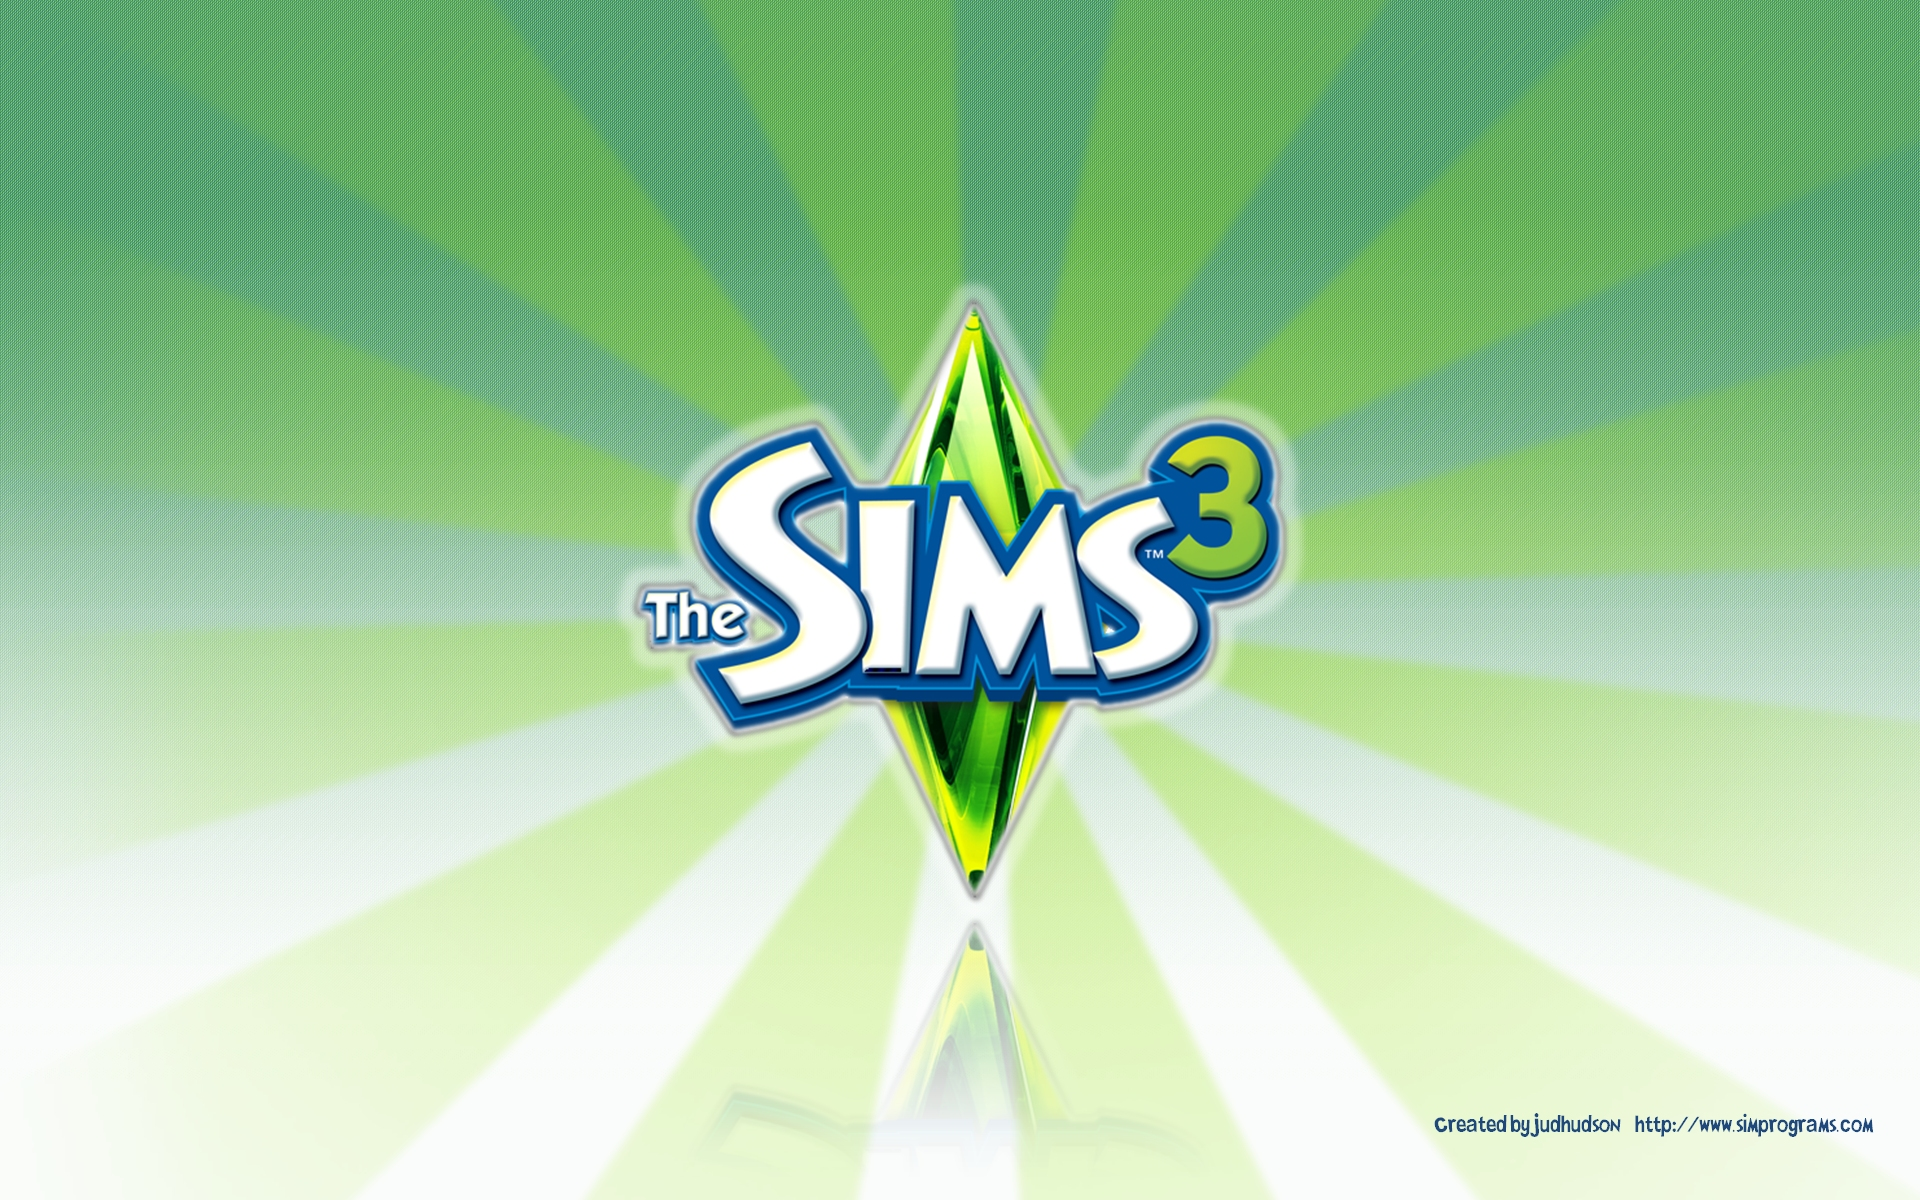 The Sims 3   Wallpaper 1 by Judhudsonjpg 1920x1200